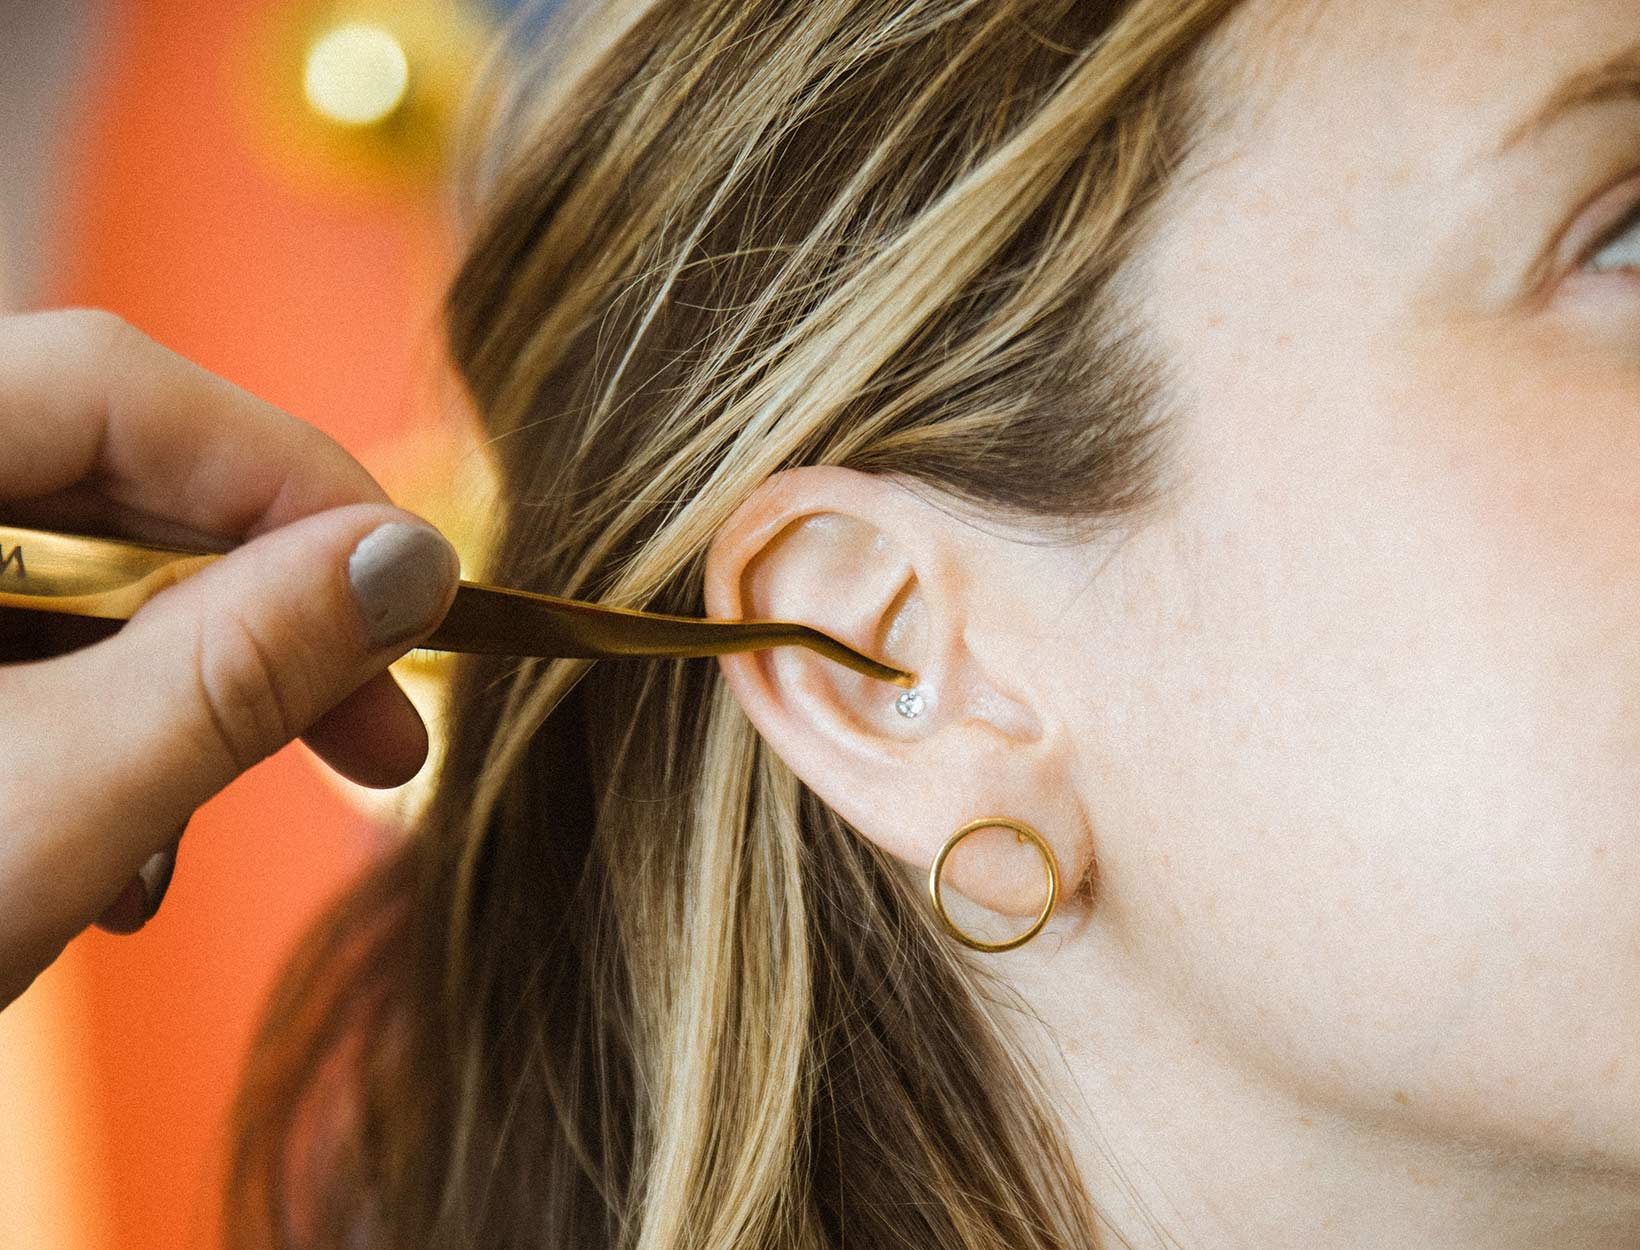 Ear Seeds for Easy, At-Home Acupressure | Goop